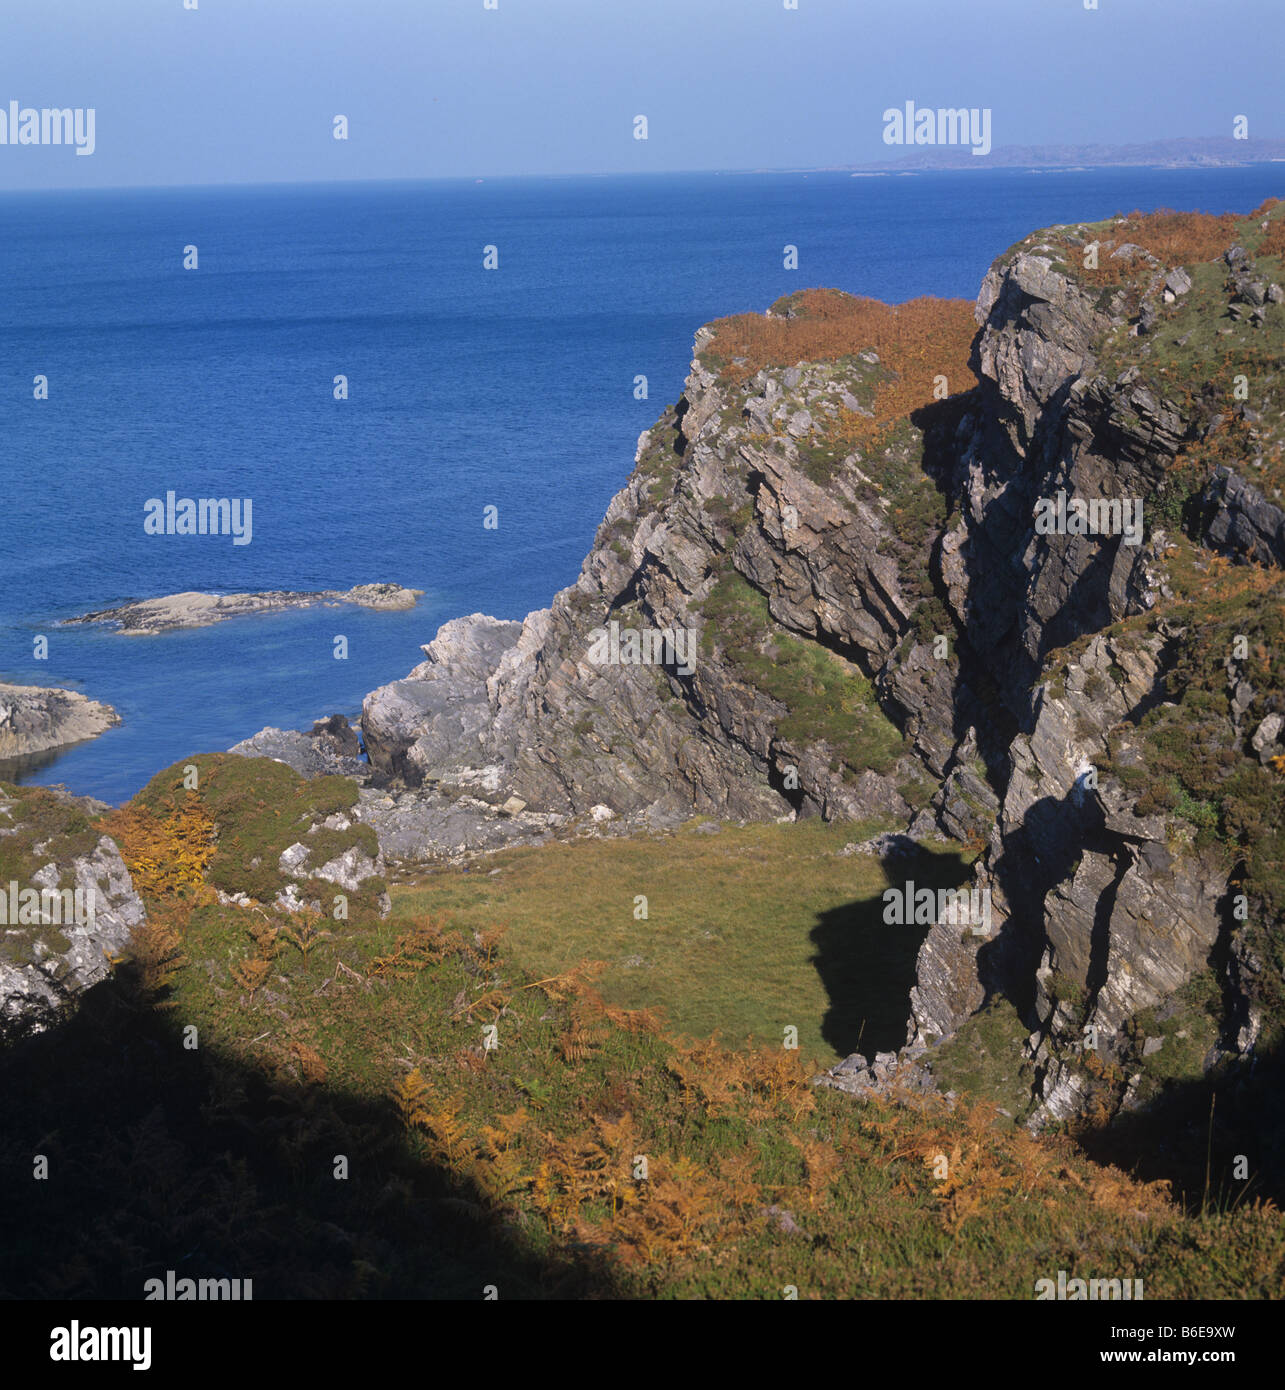 Autumn colours on the cliffs overlooking the Sound of Arisaig on the West Coast of Scotland - Stock Image